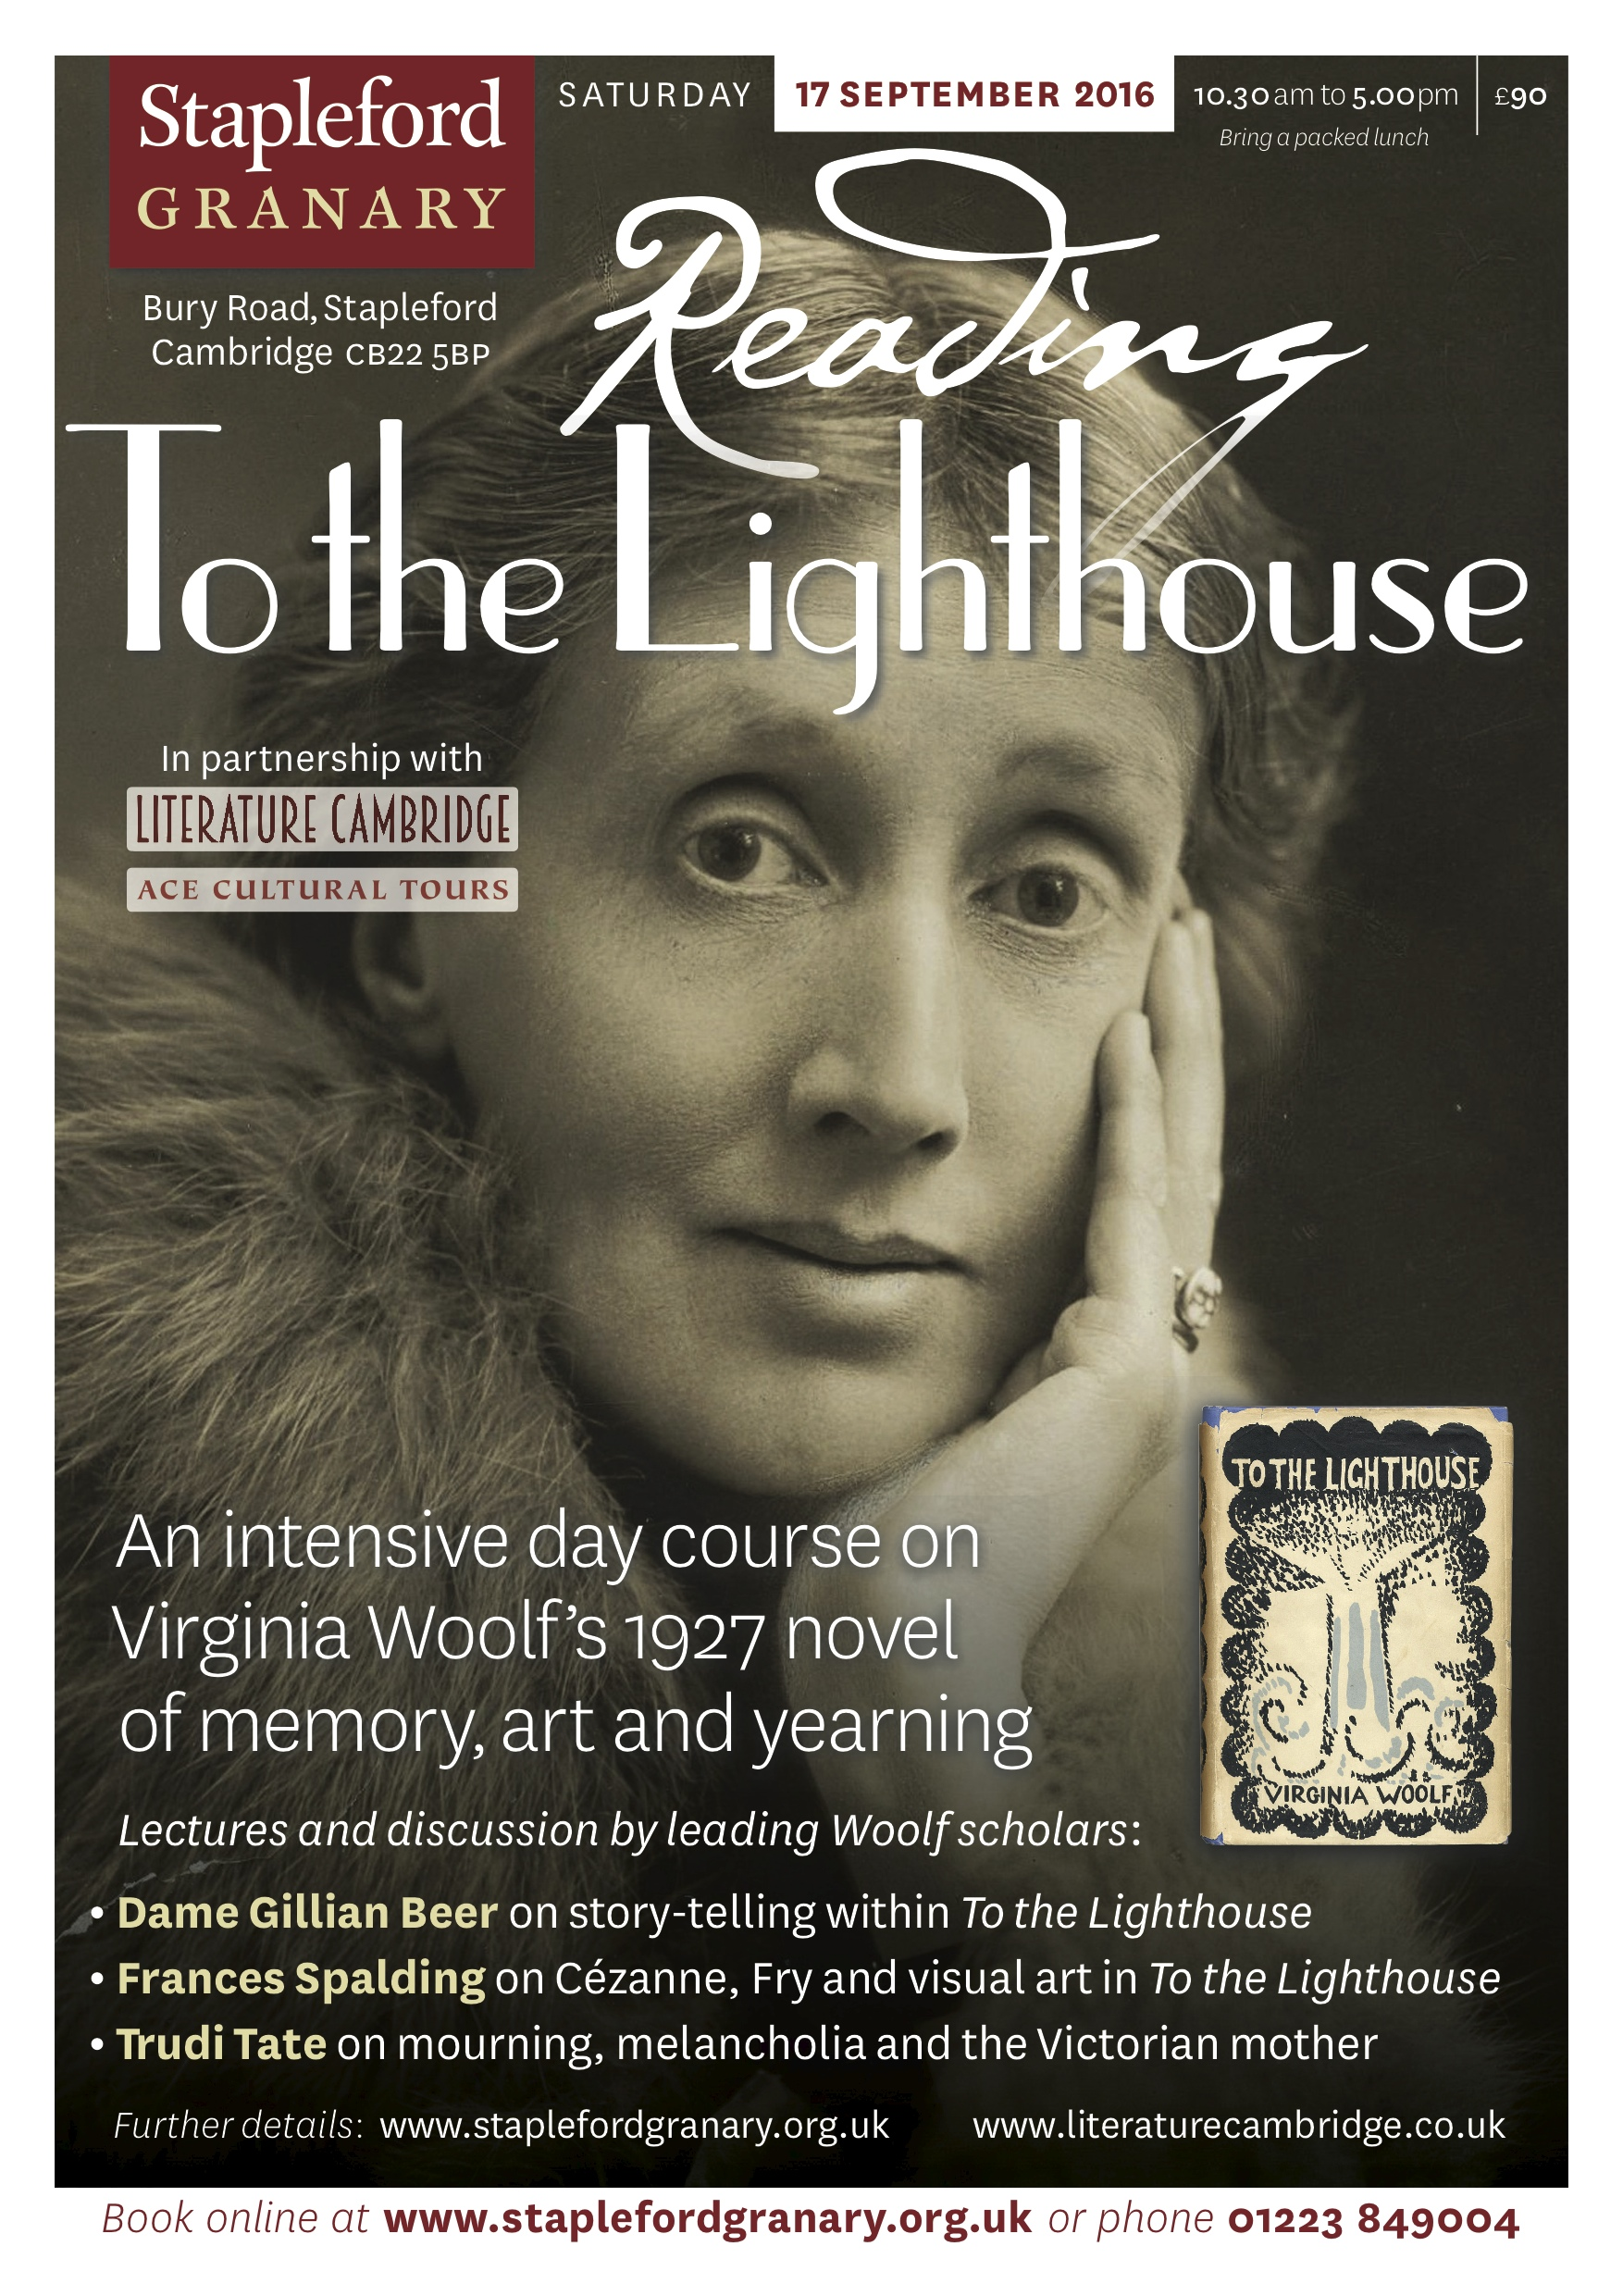 to the lighthouse blogging woolf literature cambridge presents reading to the lighthouse a study day on stapleford poster woolf 2016 jpg